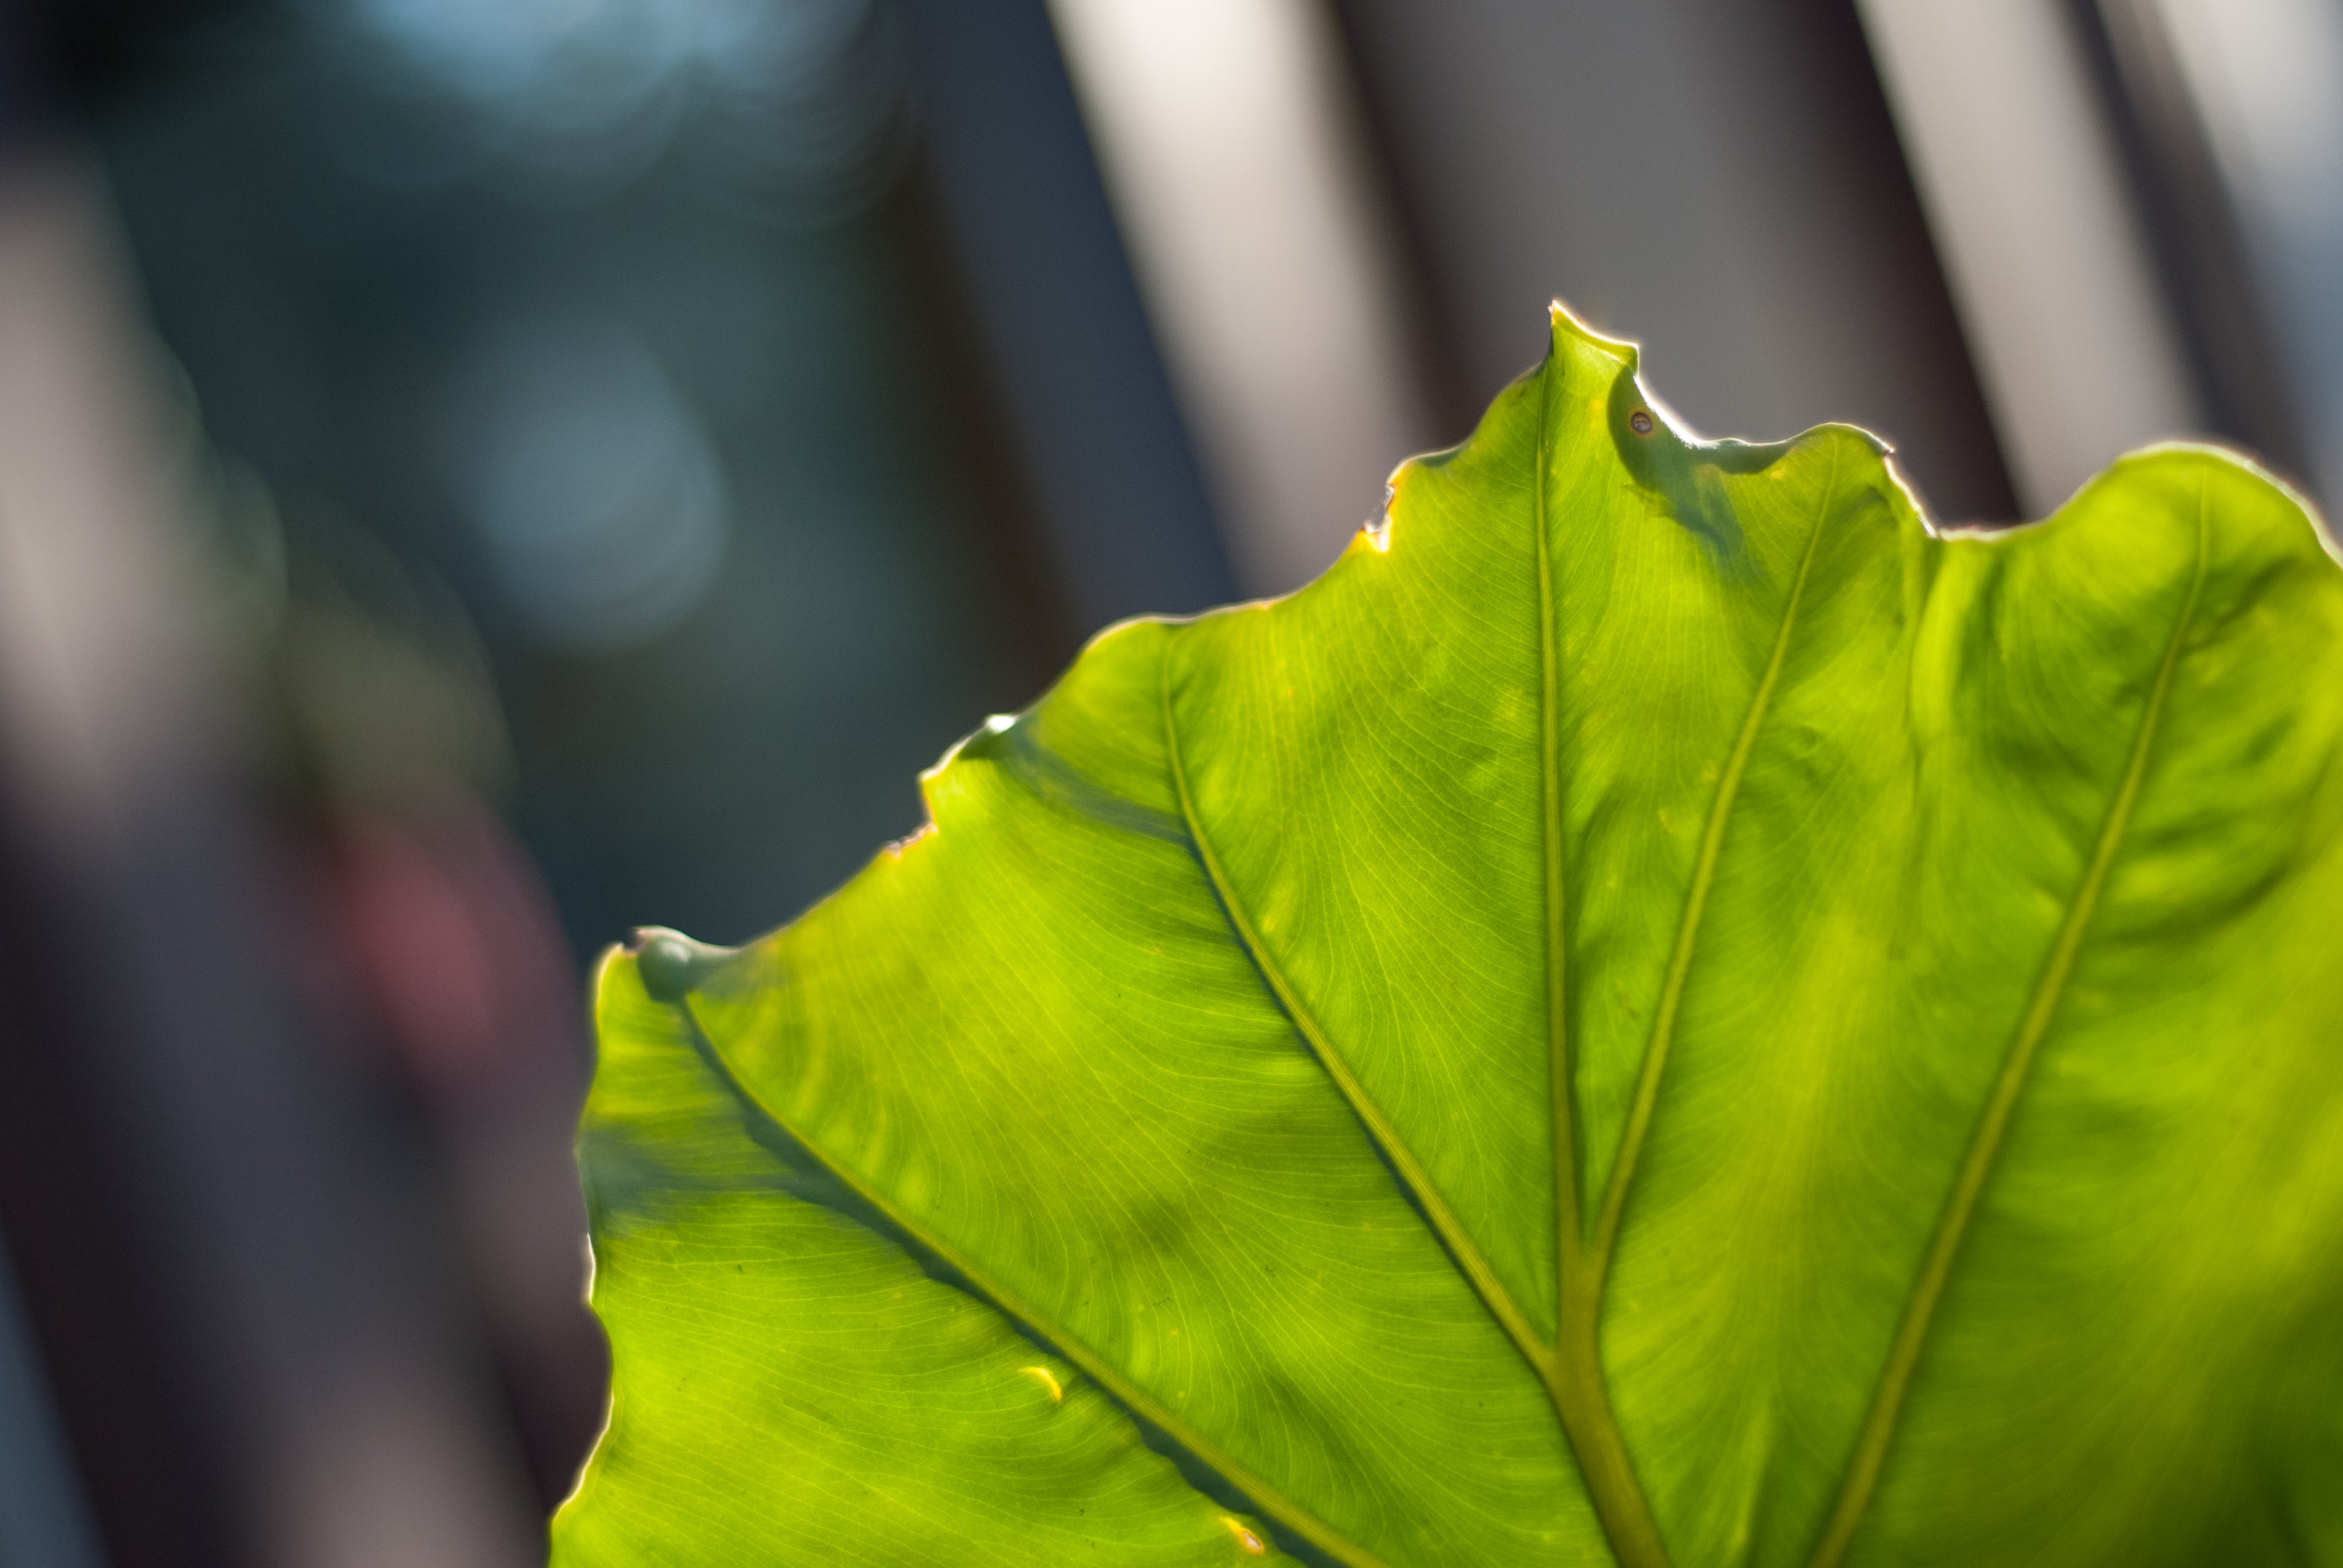 Close-up Photography of a Leaf